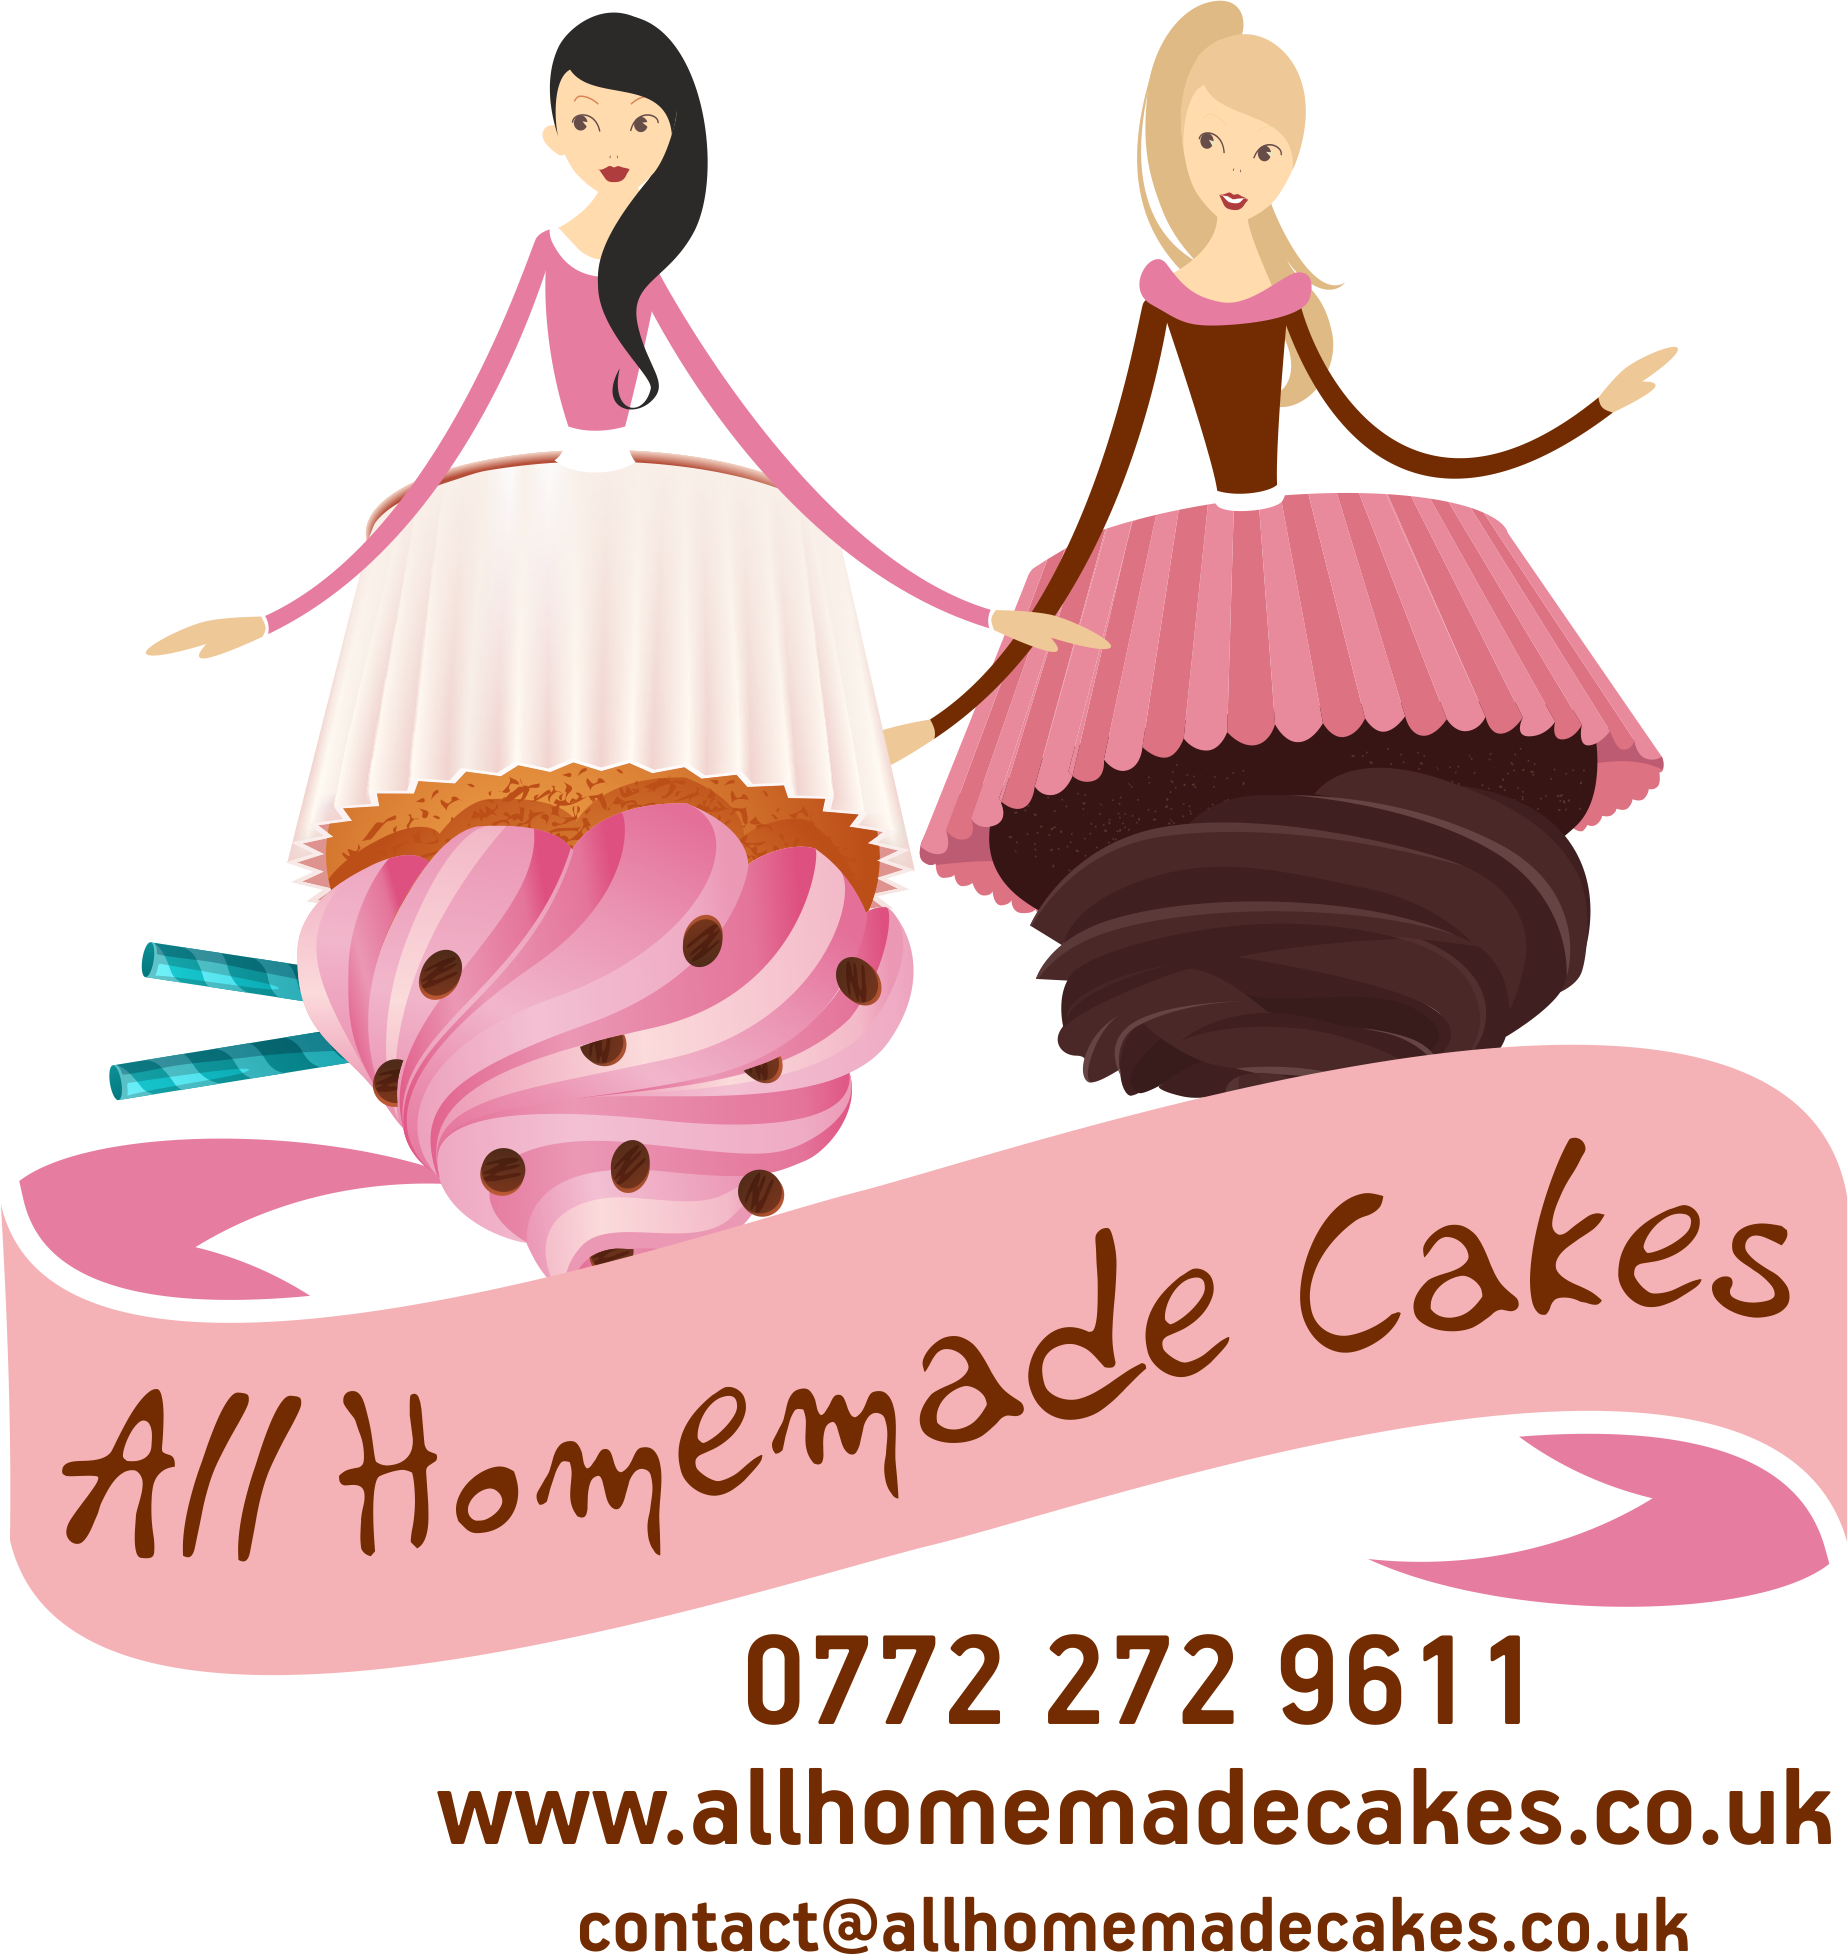 All Homemade Cakes